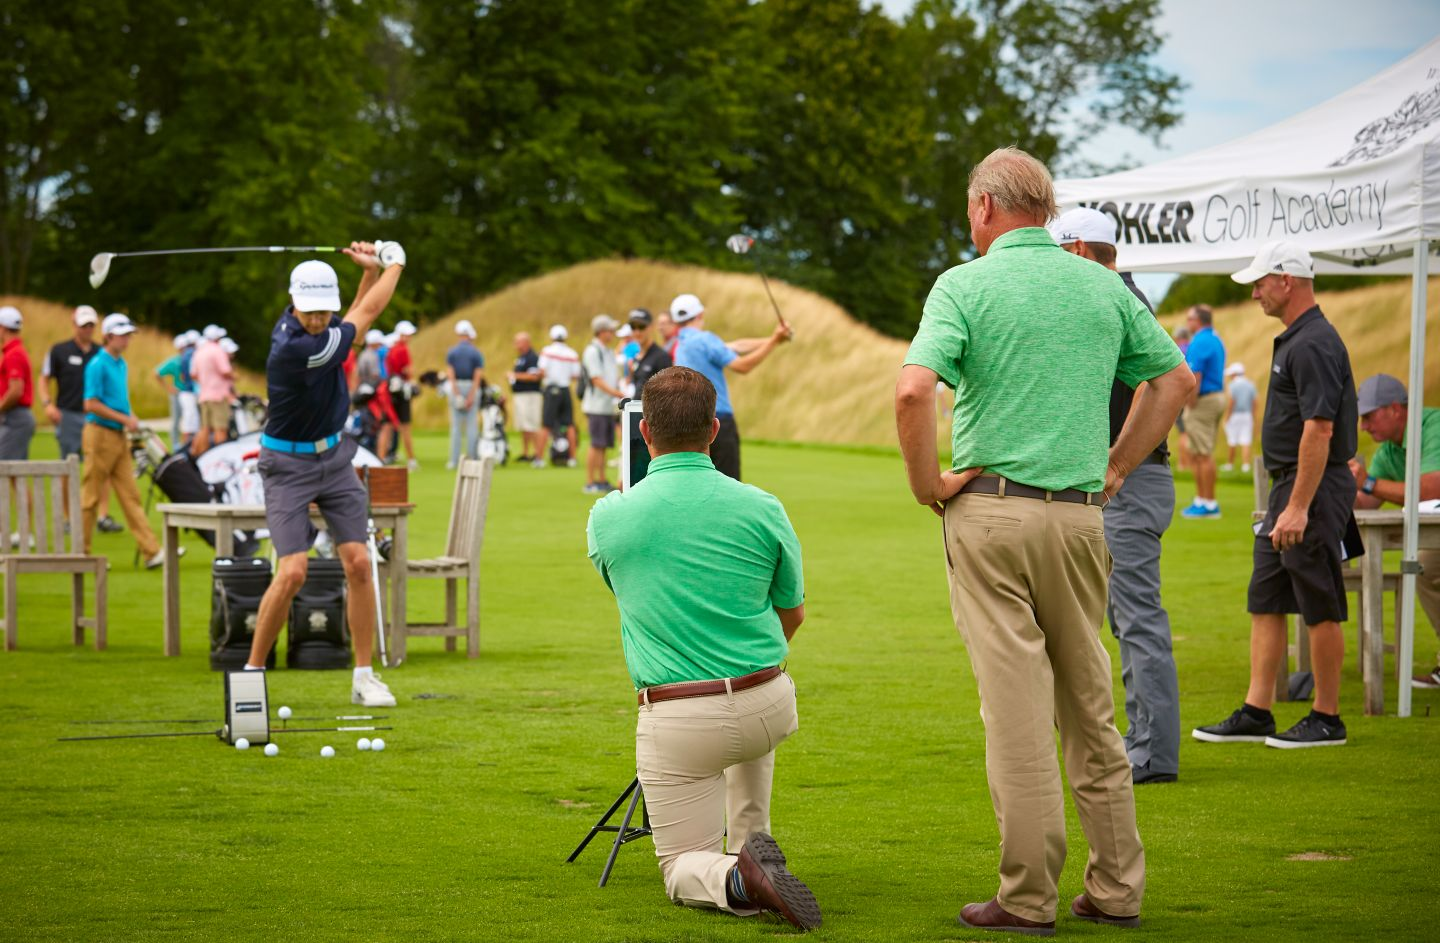 Golfers receiving golf instruction at golf course practice facility